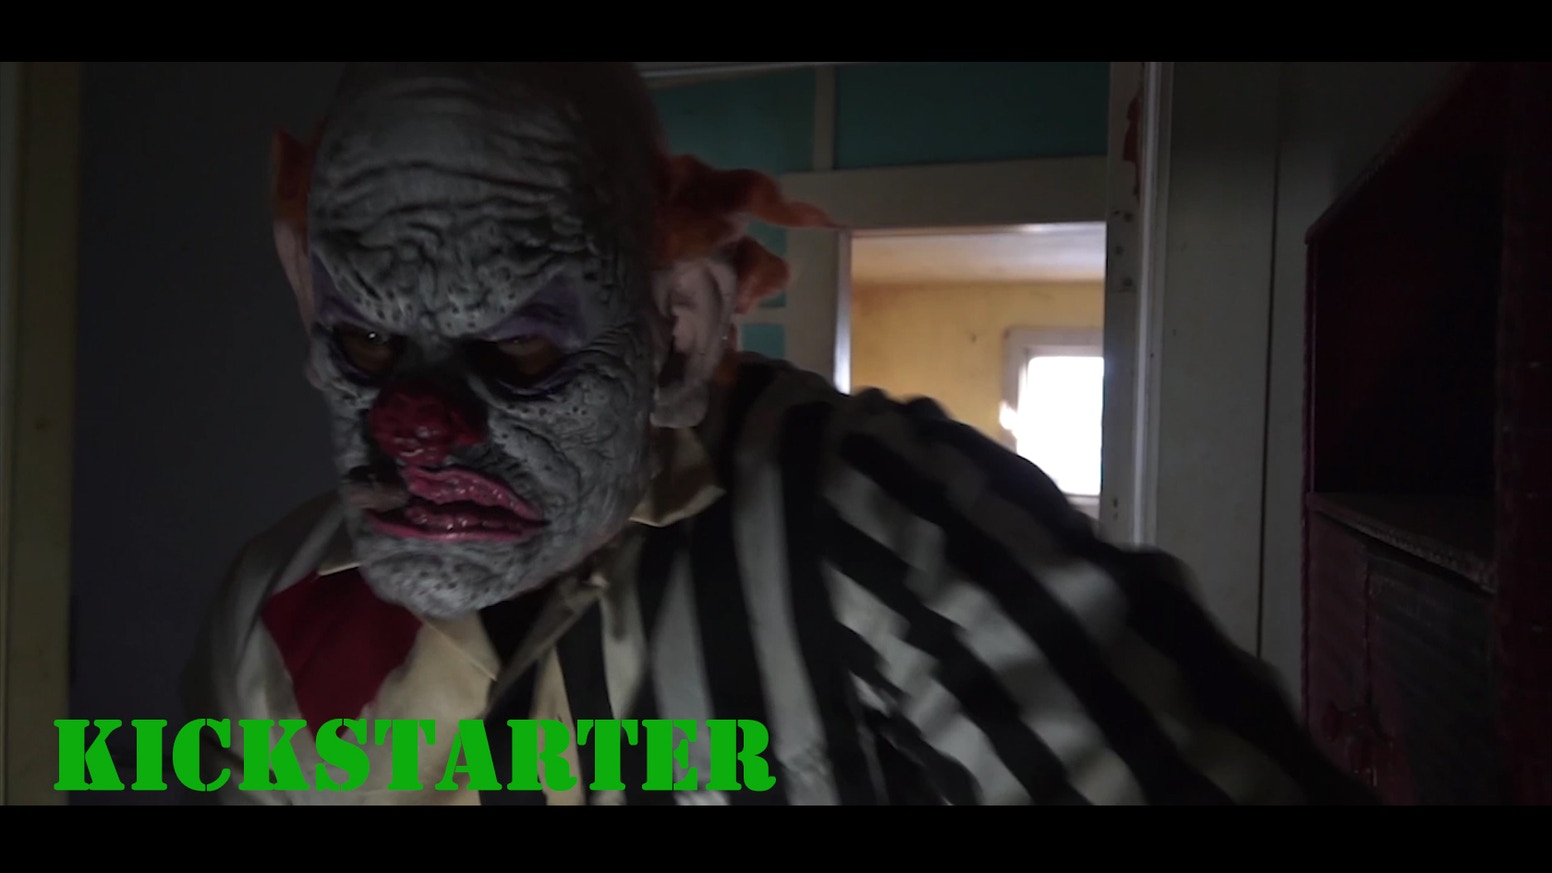 A week trip to Vegas becomes a nightmare when four young adults release an evil spirit at the notoriously haunted Clown Motel. Horror